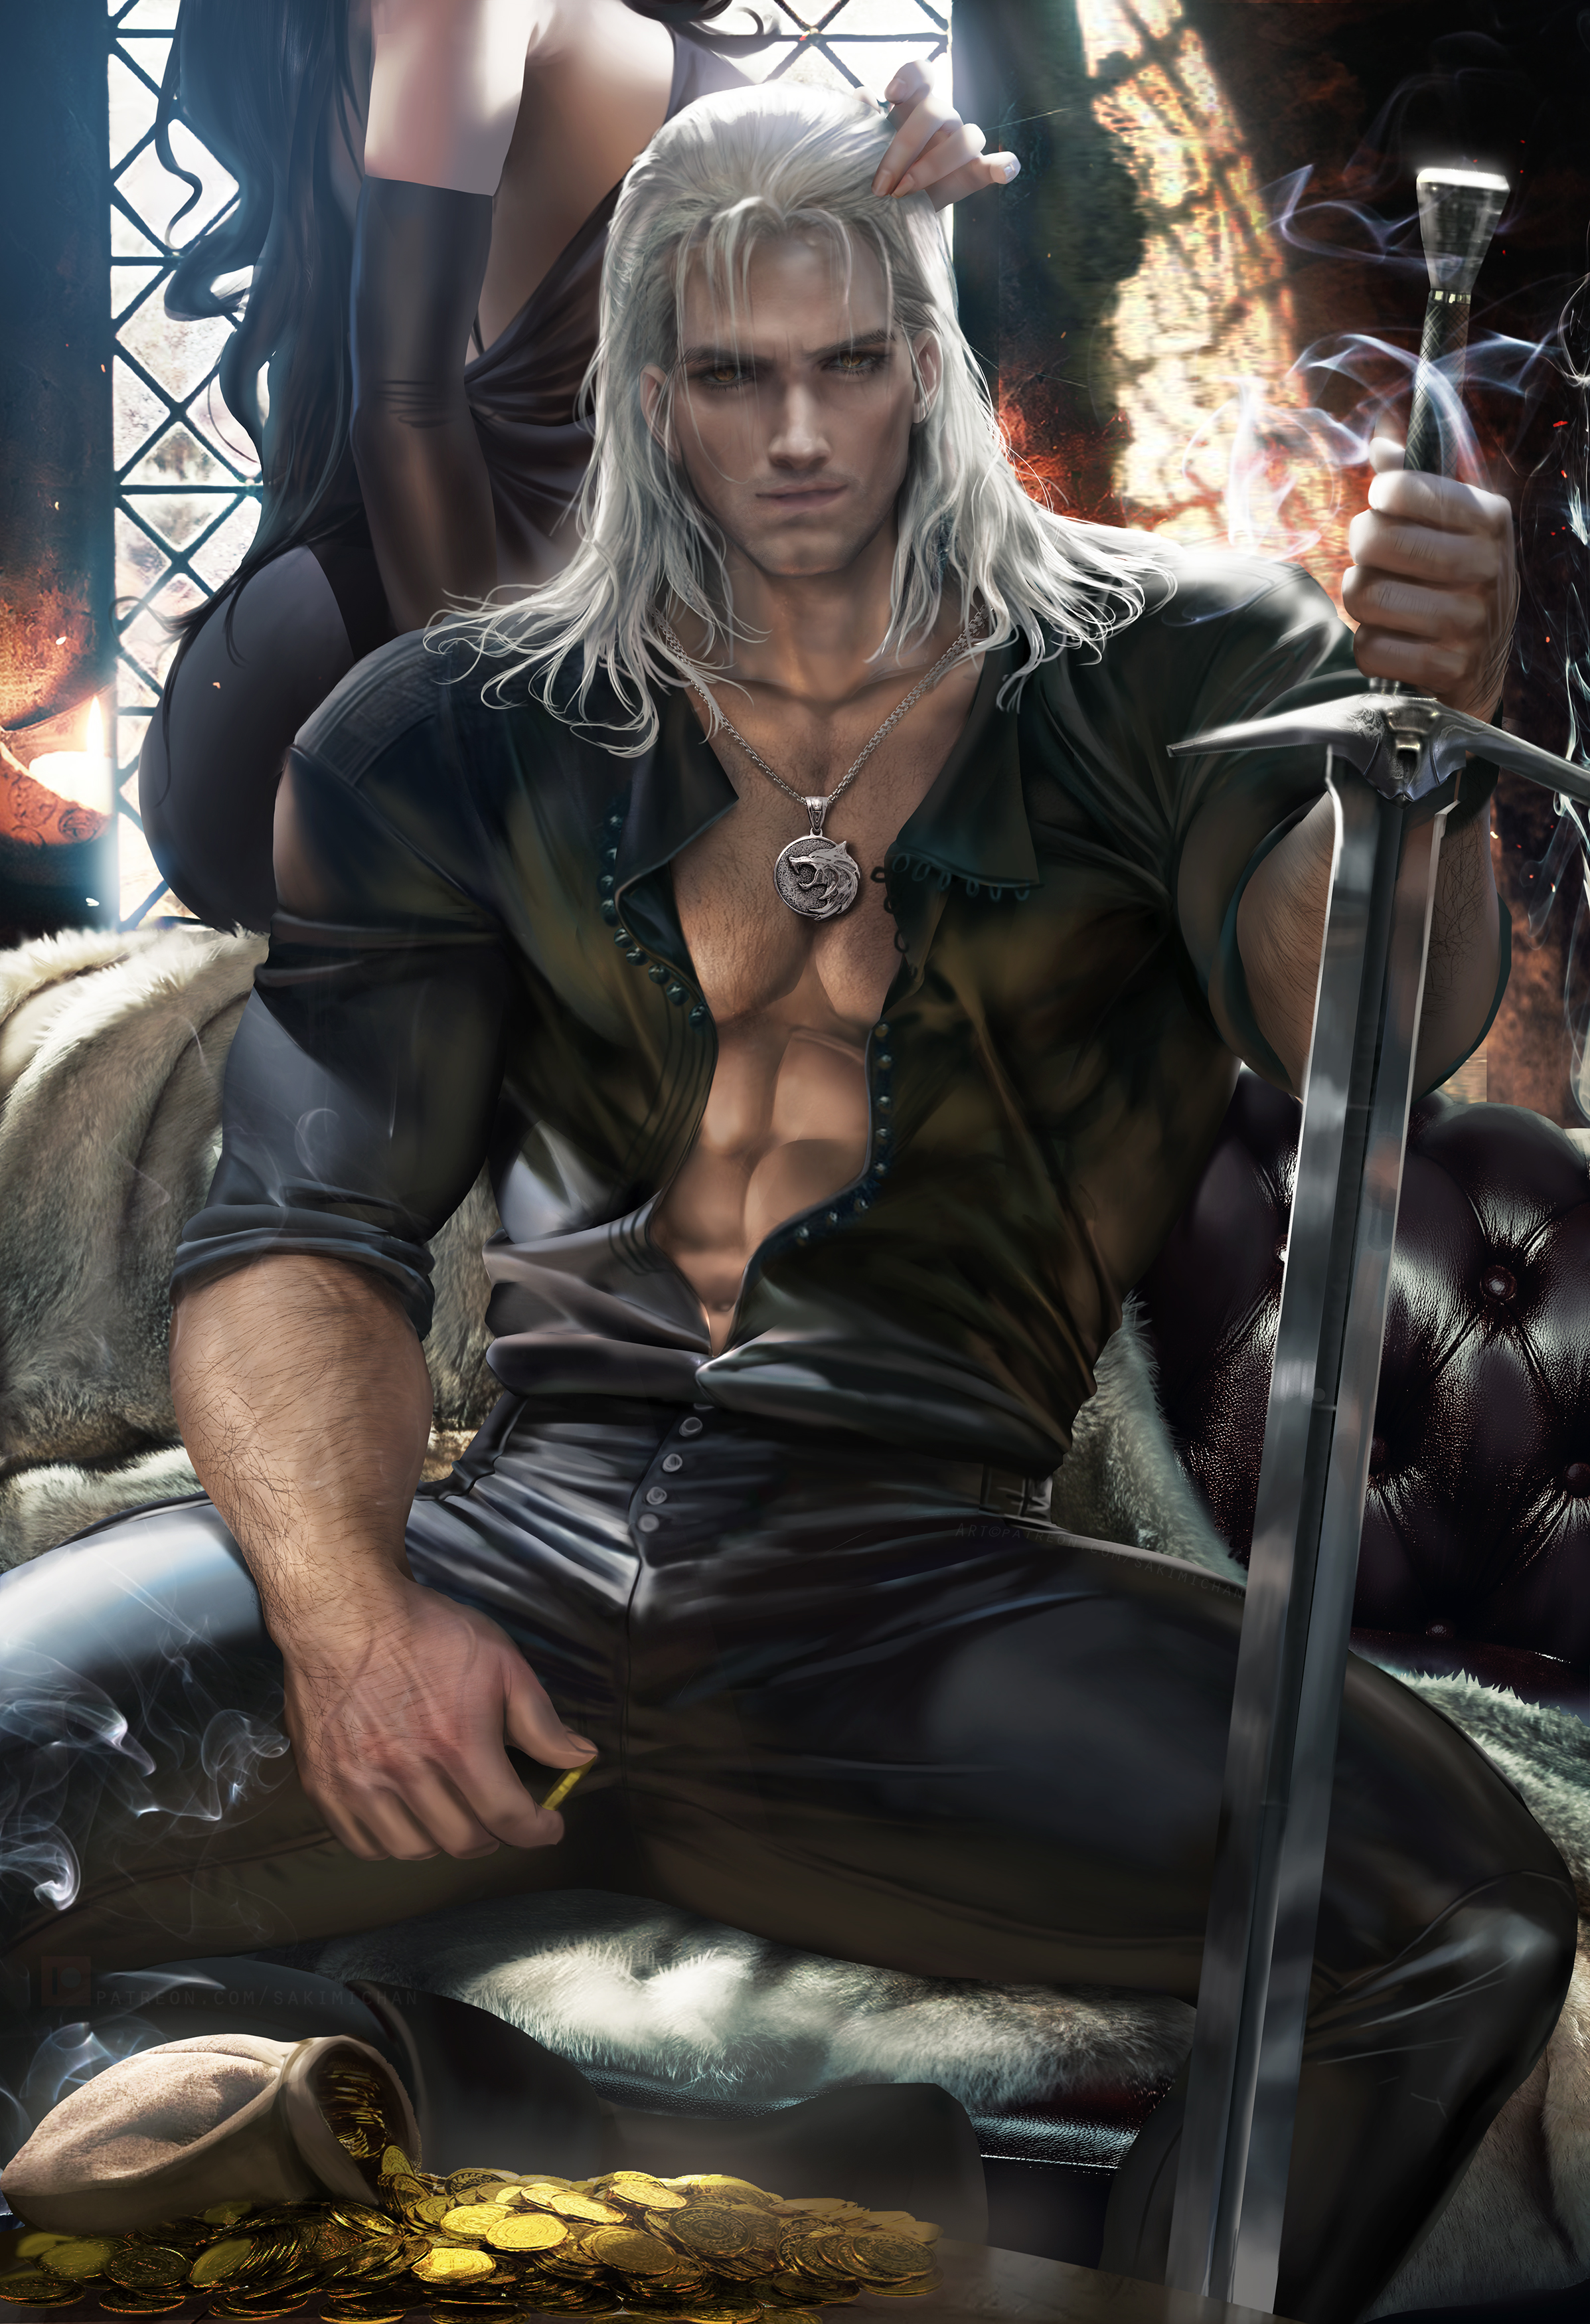 General 2395x3500 Geralt of Rivia Yennefer of Vengerberg The Witcher video games video game characters men women brunette long hair black dress white hair looking at viewer yellow eyes Fantasy Men necklace muscles 6-pack shirt open shirt pants black clothing sword weapon smoke coins gold money sitting portrait display vertical couch artwork drawing digital art illustration fan art Sakimichan frontal view